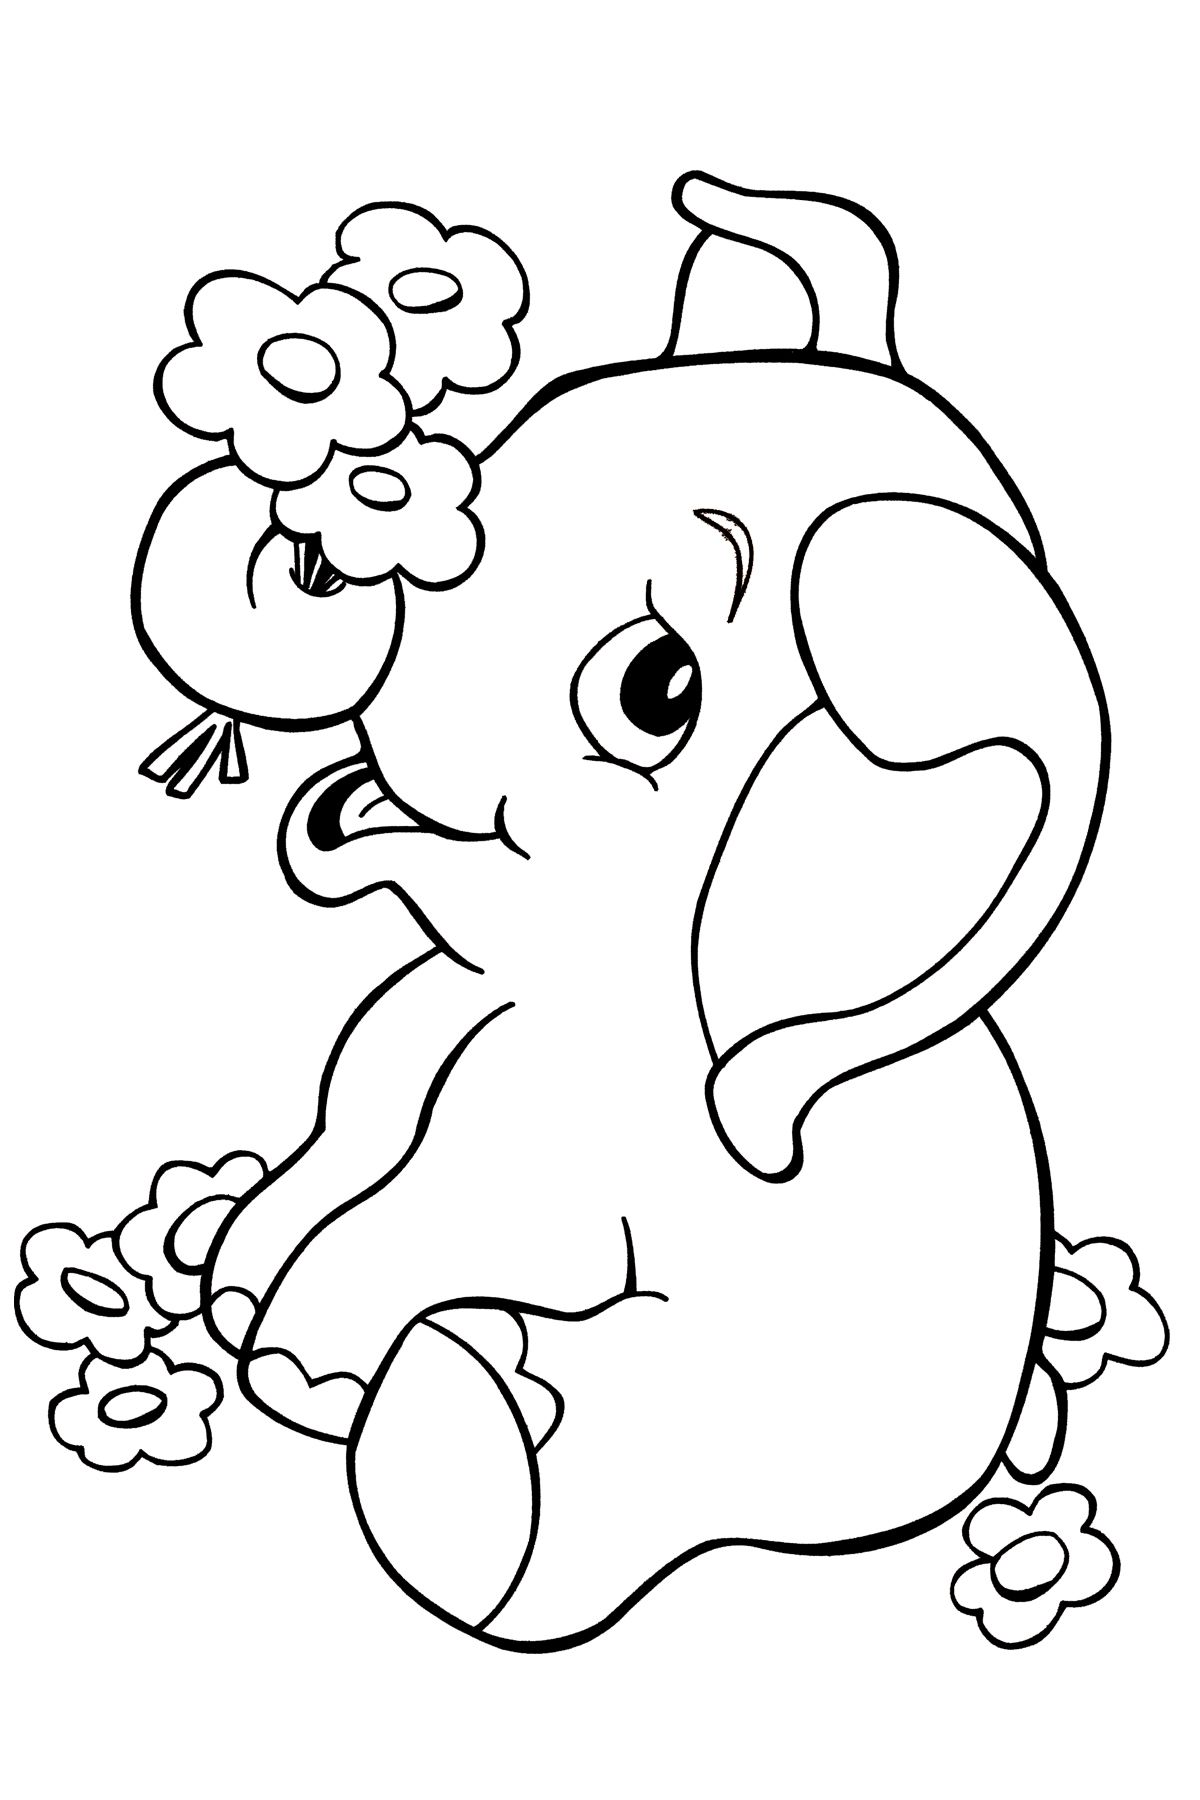 elephant line art - Google Search | sewing inspiration | Pinterest ...